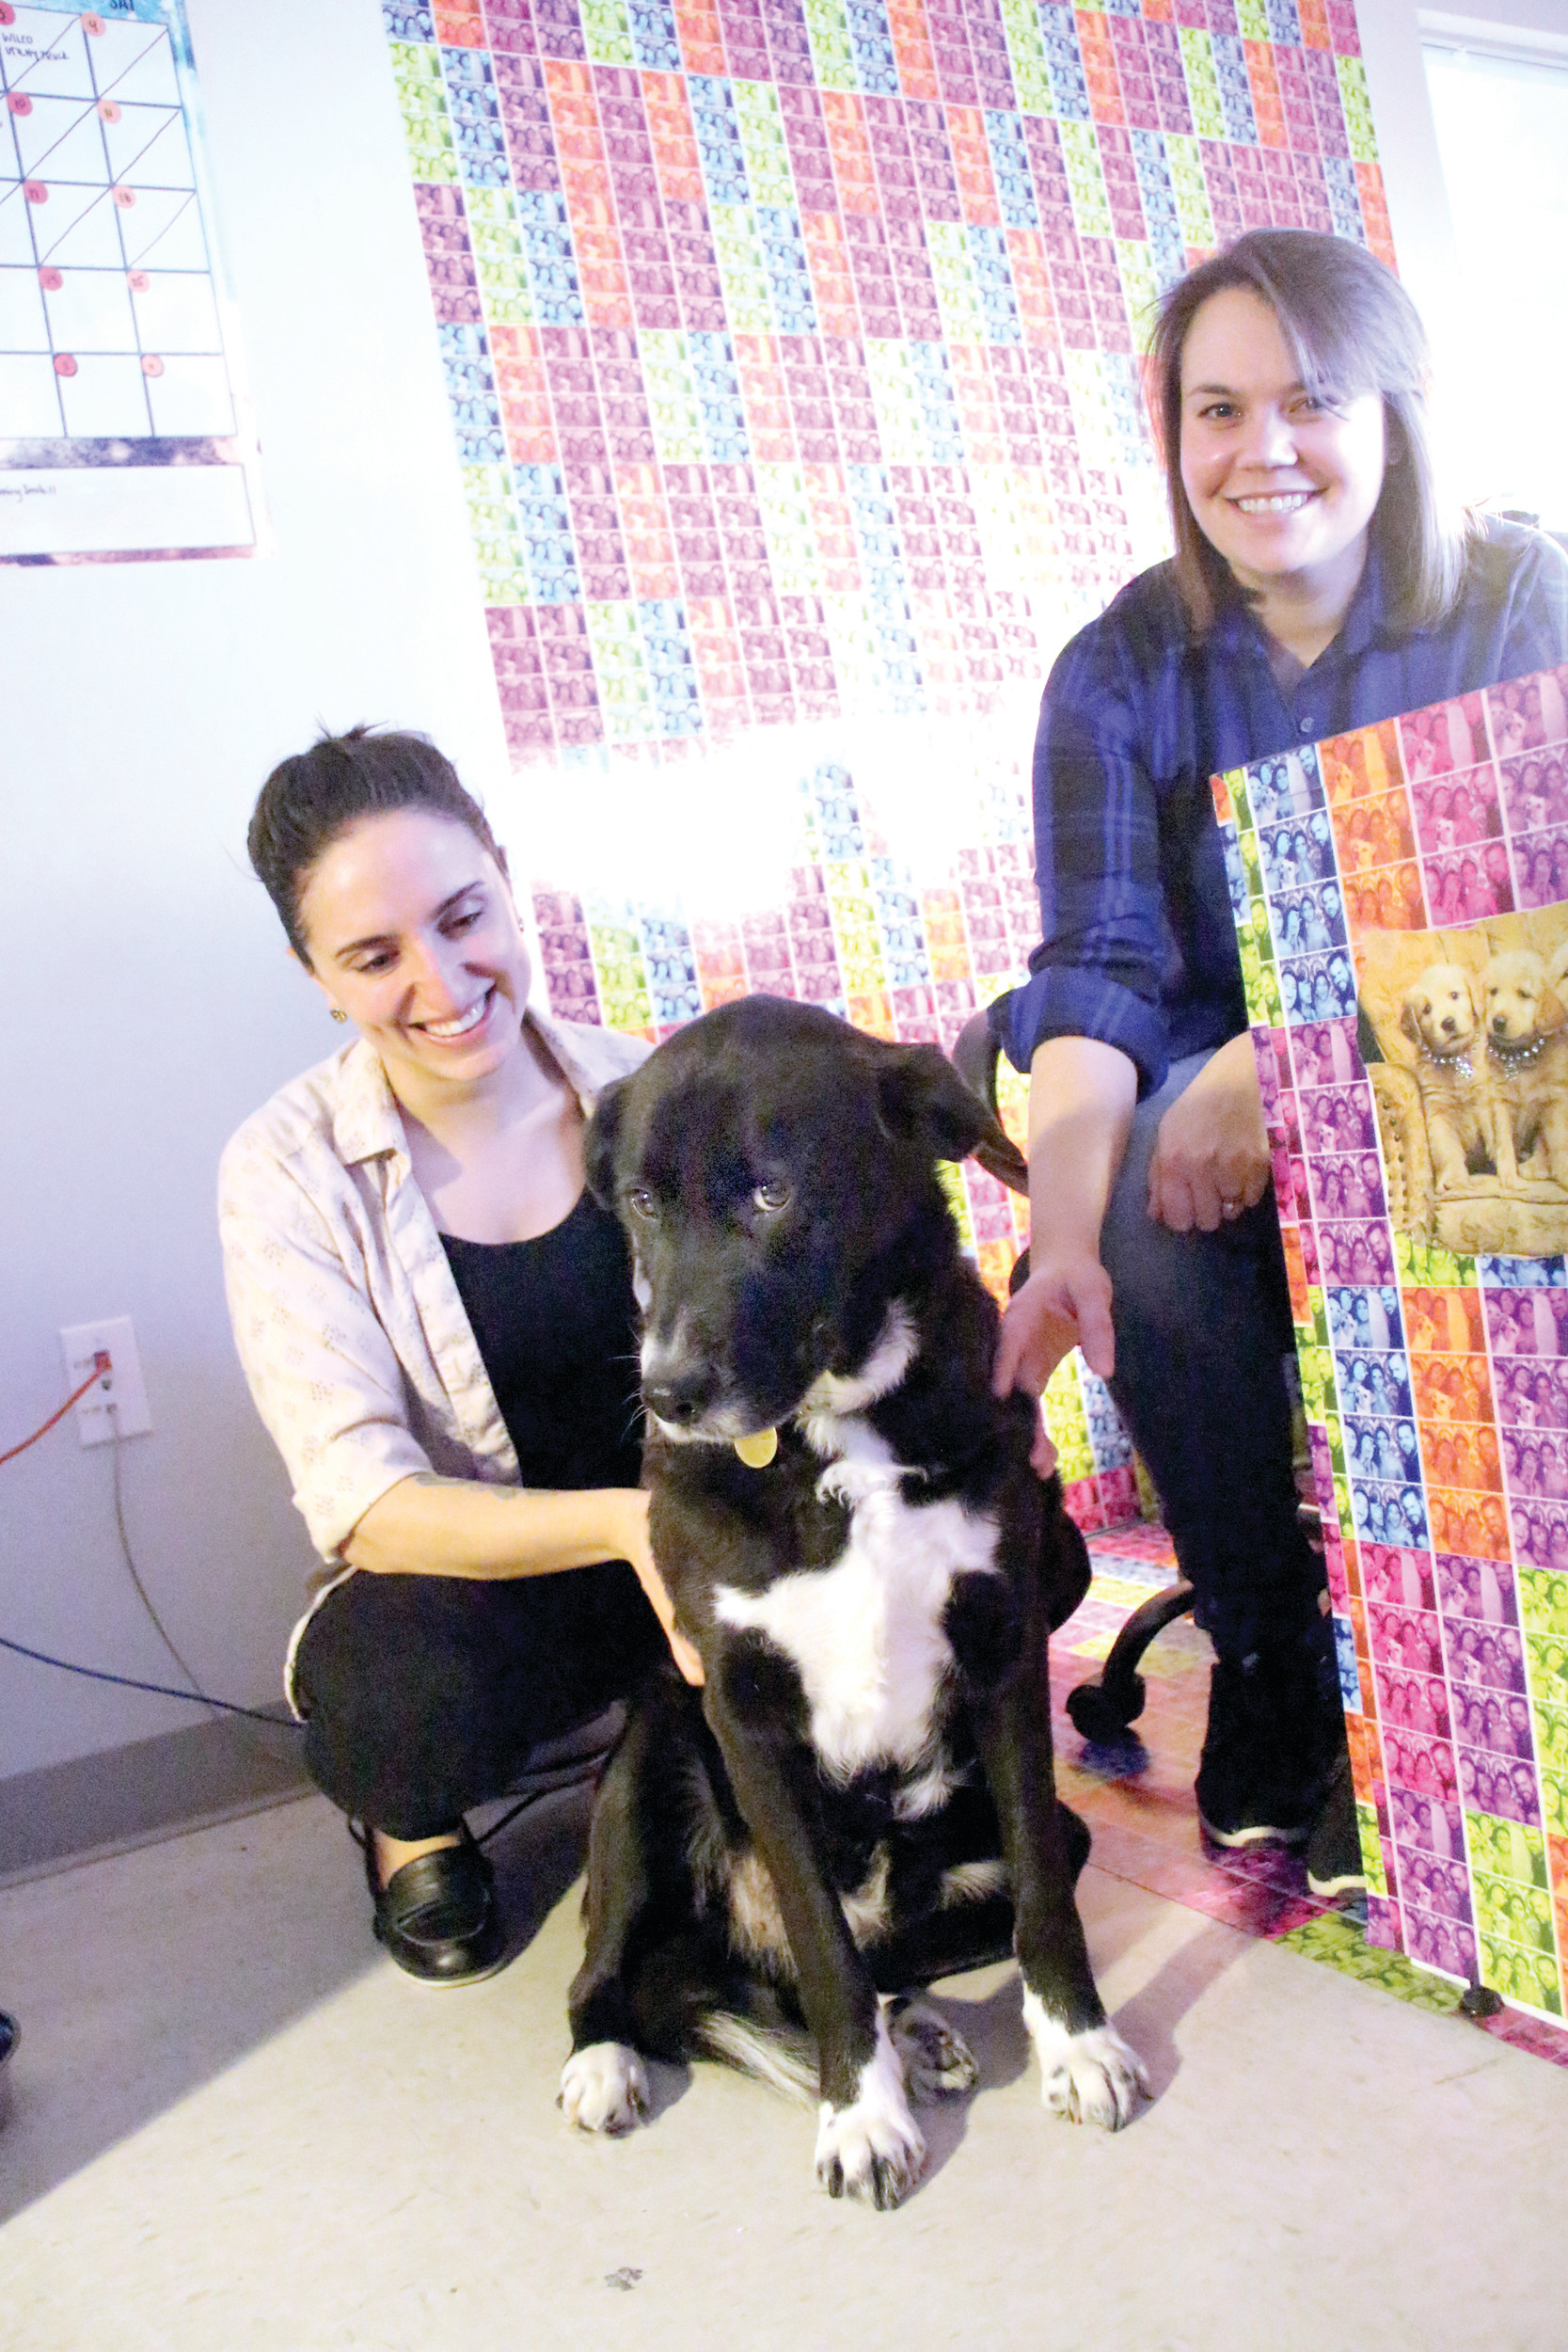 PART OF THE TEAM: Karen, a Labrador retriever mixed breed rescue dog from Tennessee, enjoys the attention of her owner, Danielle Zarrella, and Lindsay Webster, both graphic designers at Bori Graphix in Warwick. The company allows employees to bring their pets to work.